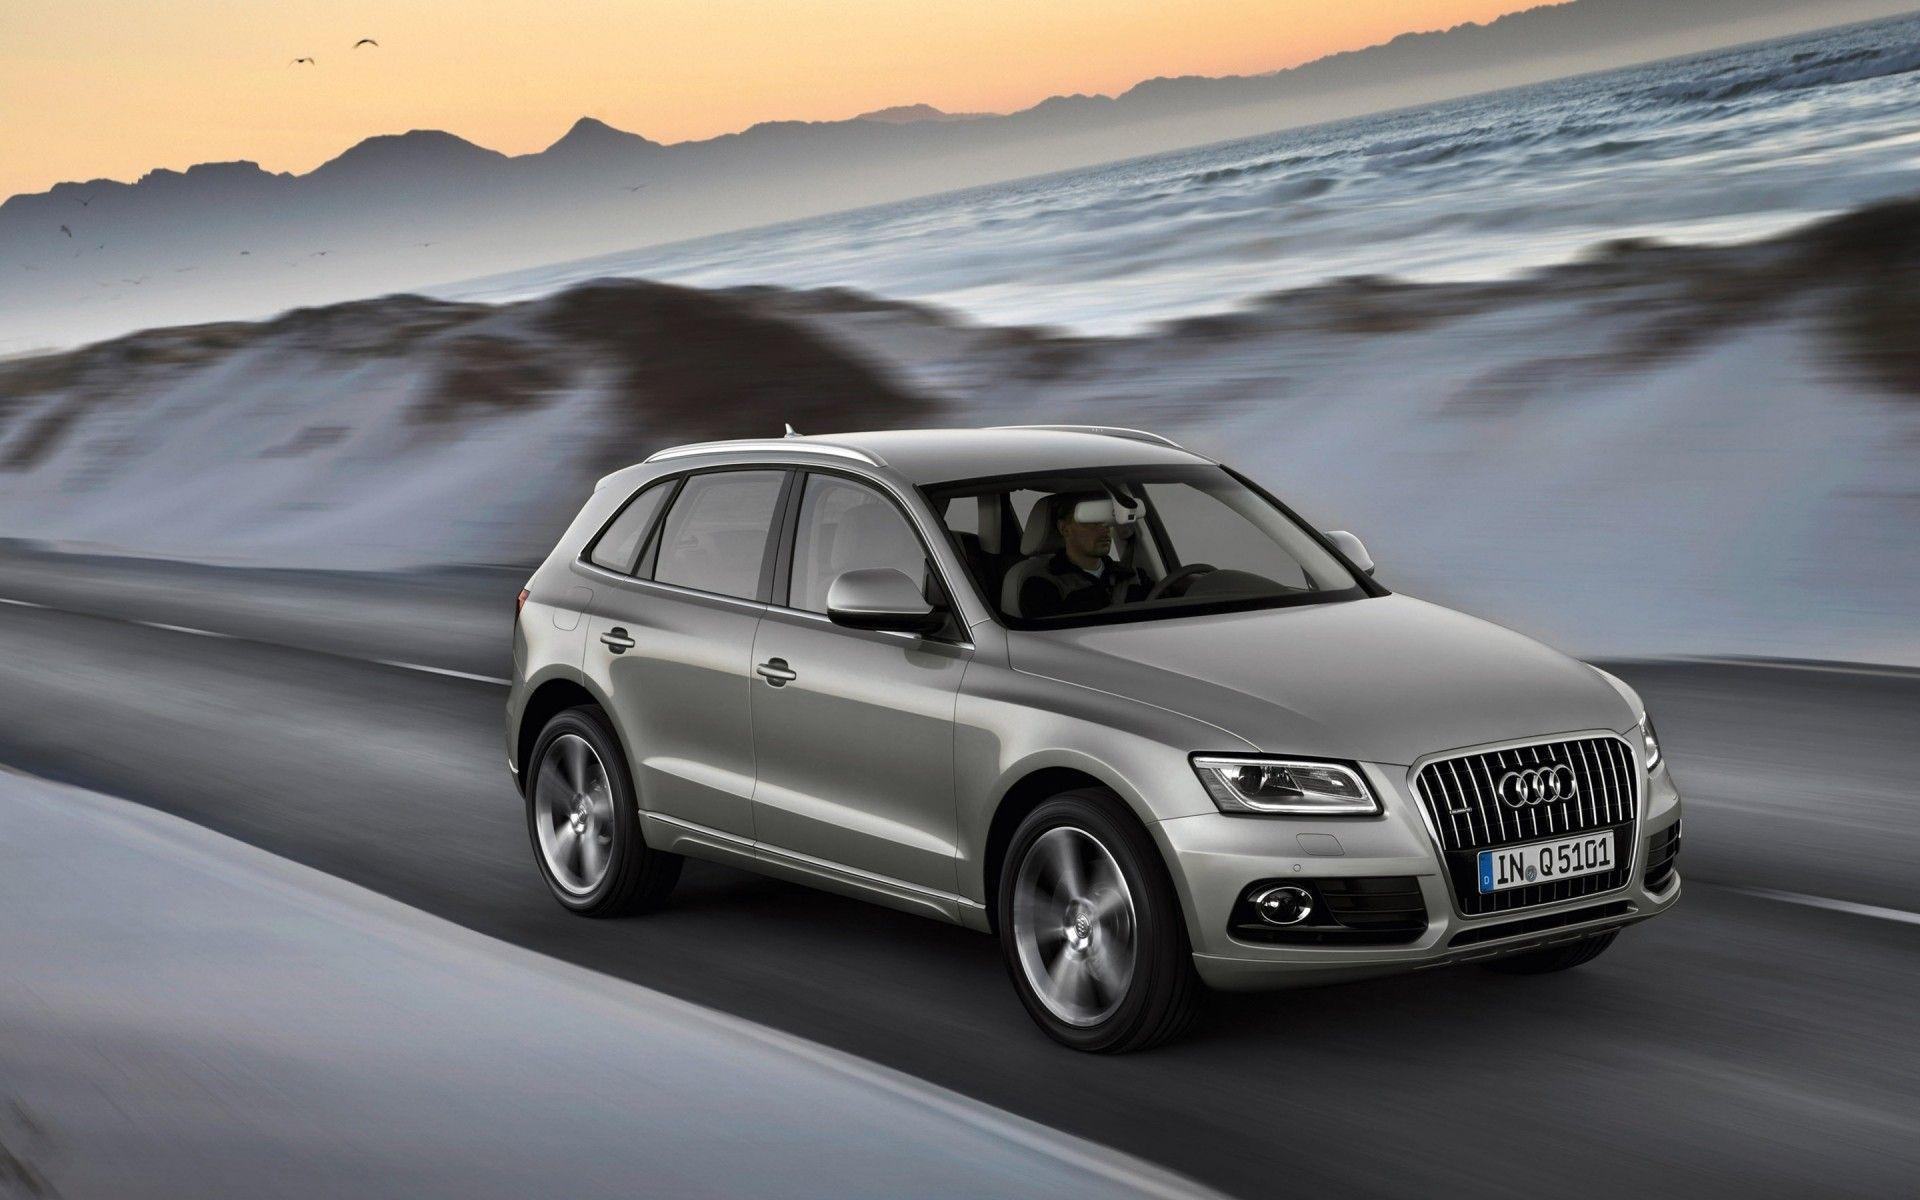 2013 Audi Q5. Android wallpapers for free.